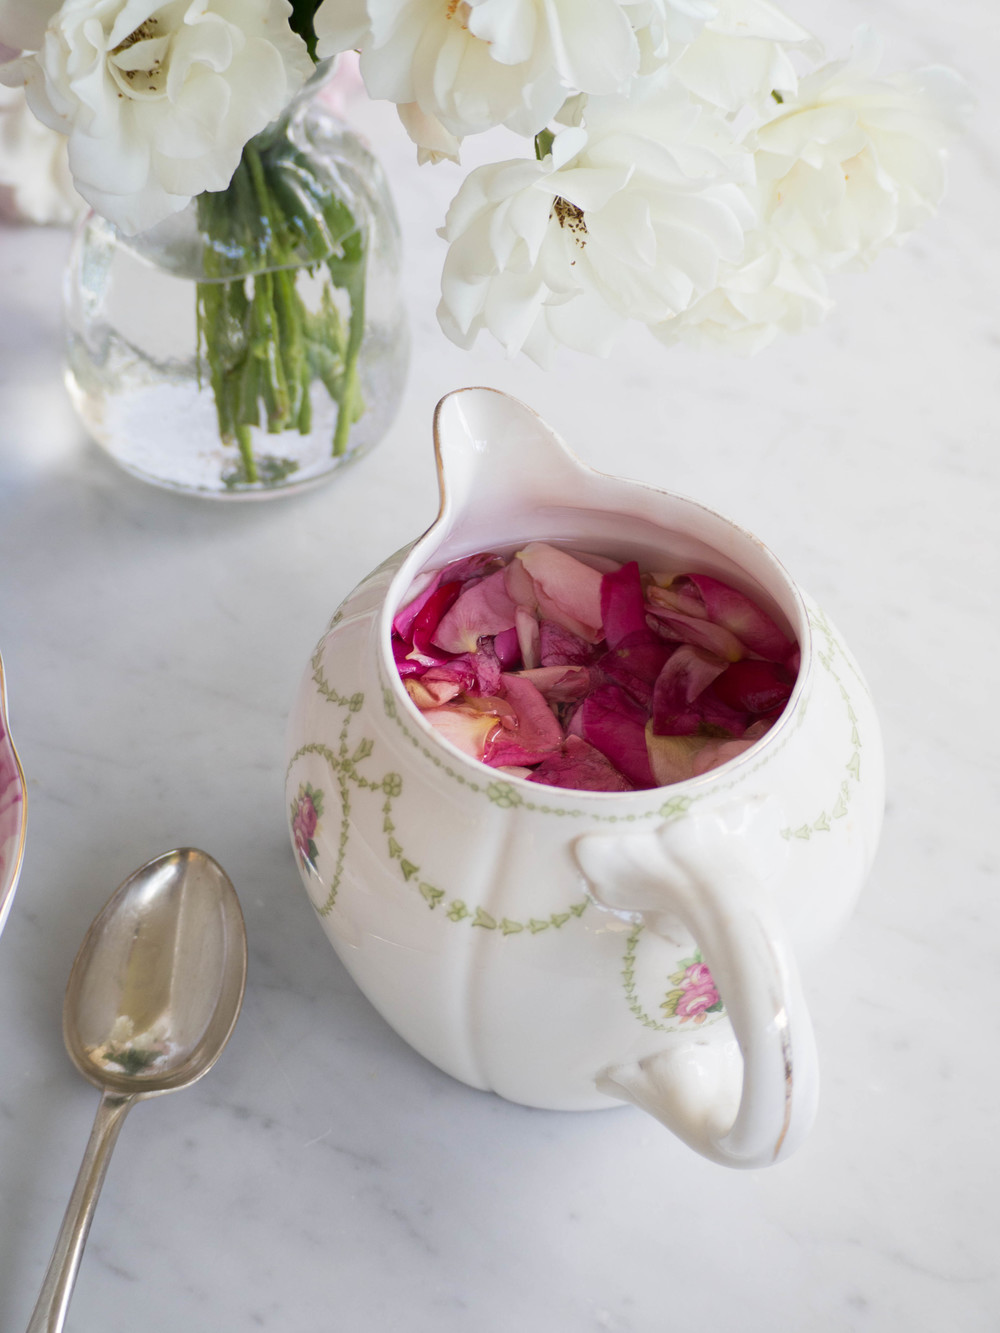 Homemade Rose Syrup - Kulinary Adventures of Kath